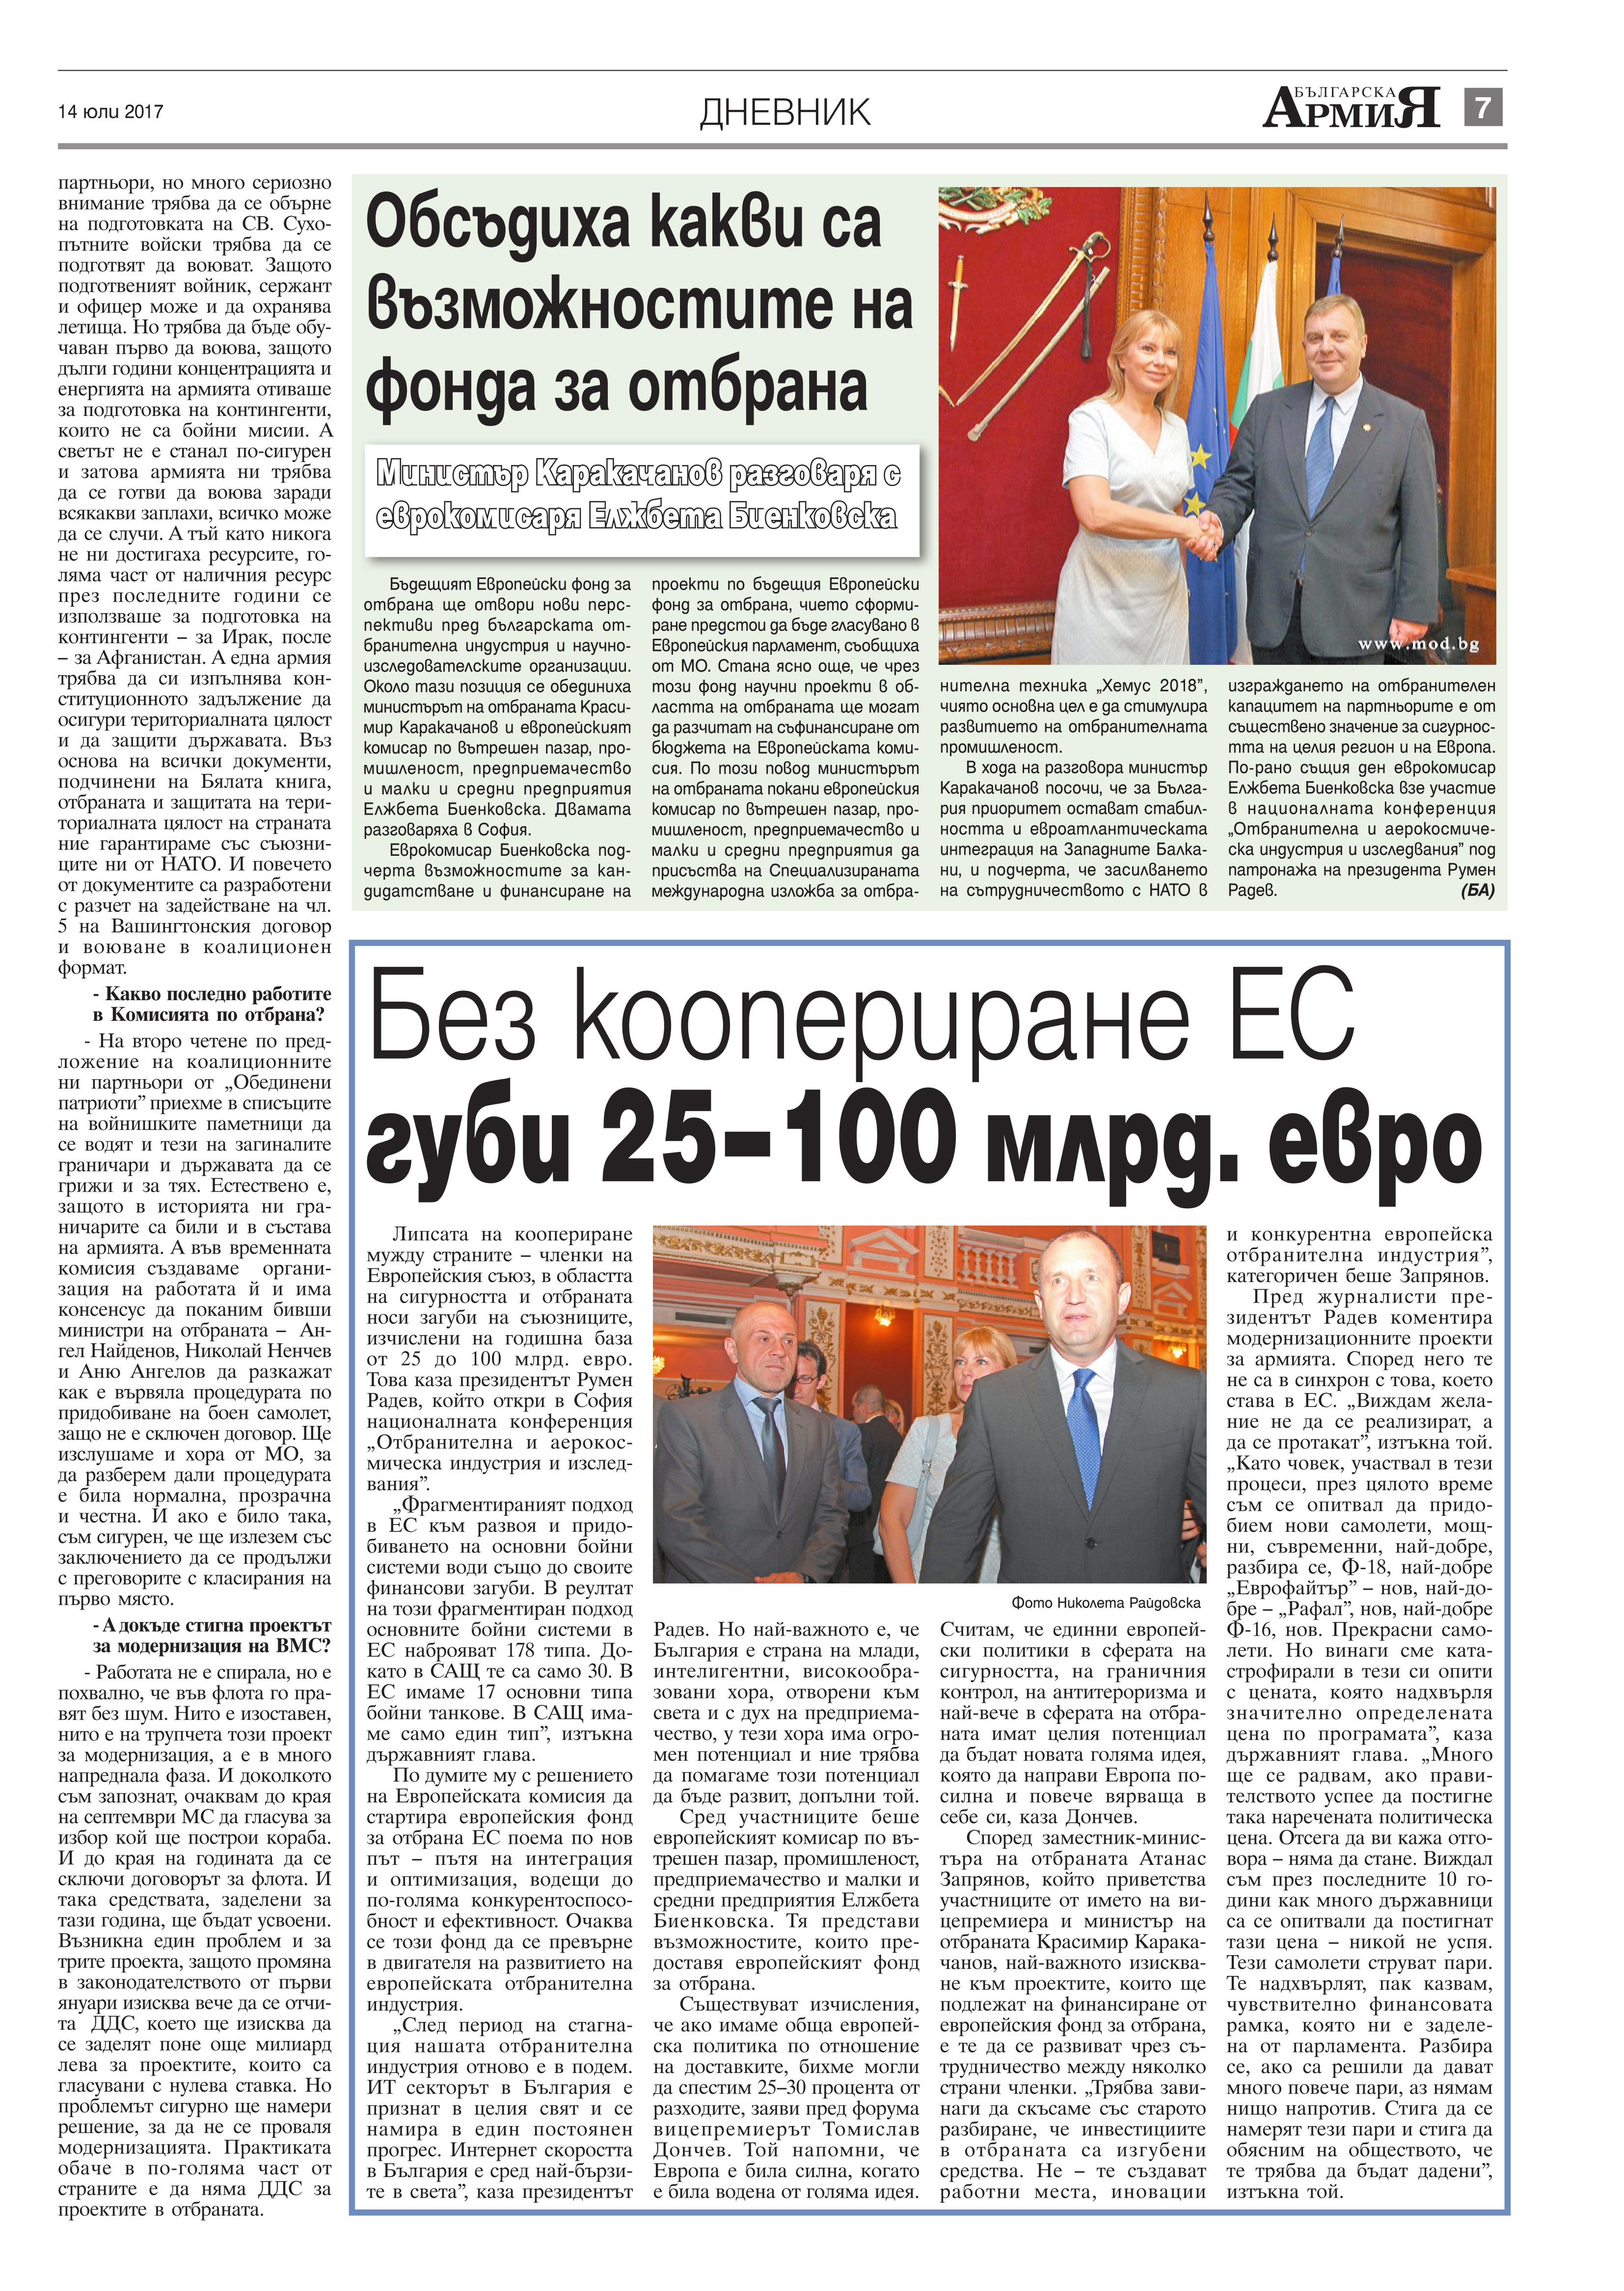 https://www.armymedia.bg/wp-content/uploads/2015/06/07.page1_-25.jpg